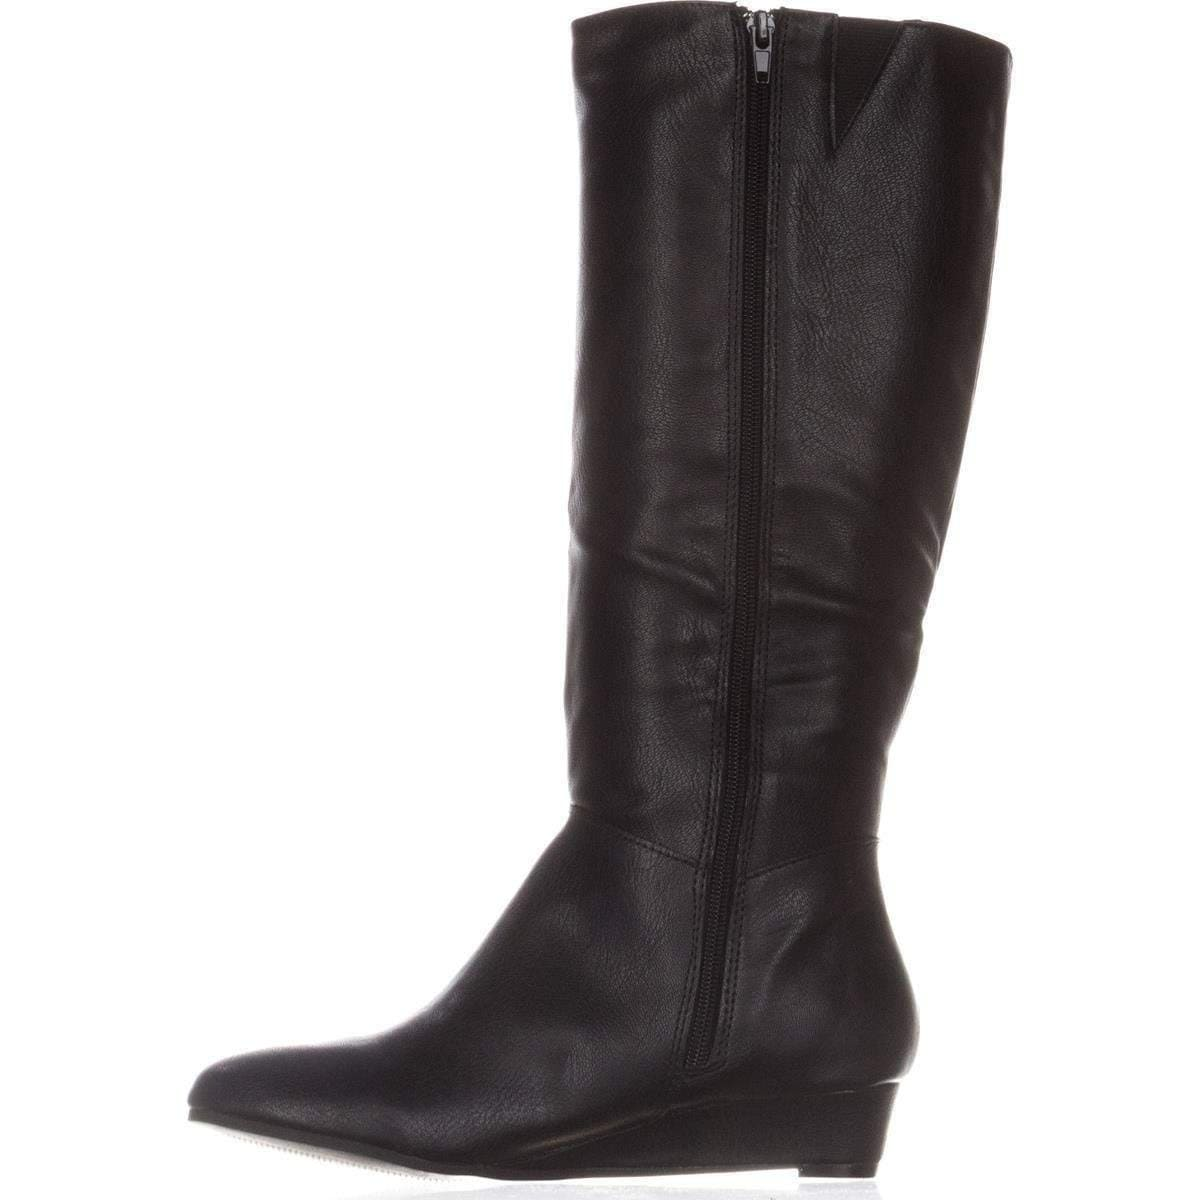 df805c0b0efd Womens Rainne Closed Toe Knee High Fashion Boots - Free Shipping On Orders  Over  45 - Overstock.com - 24030821